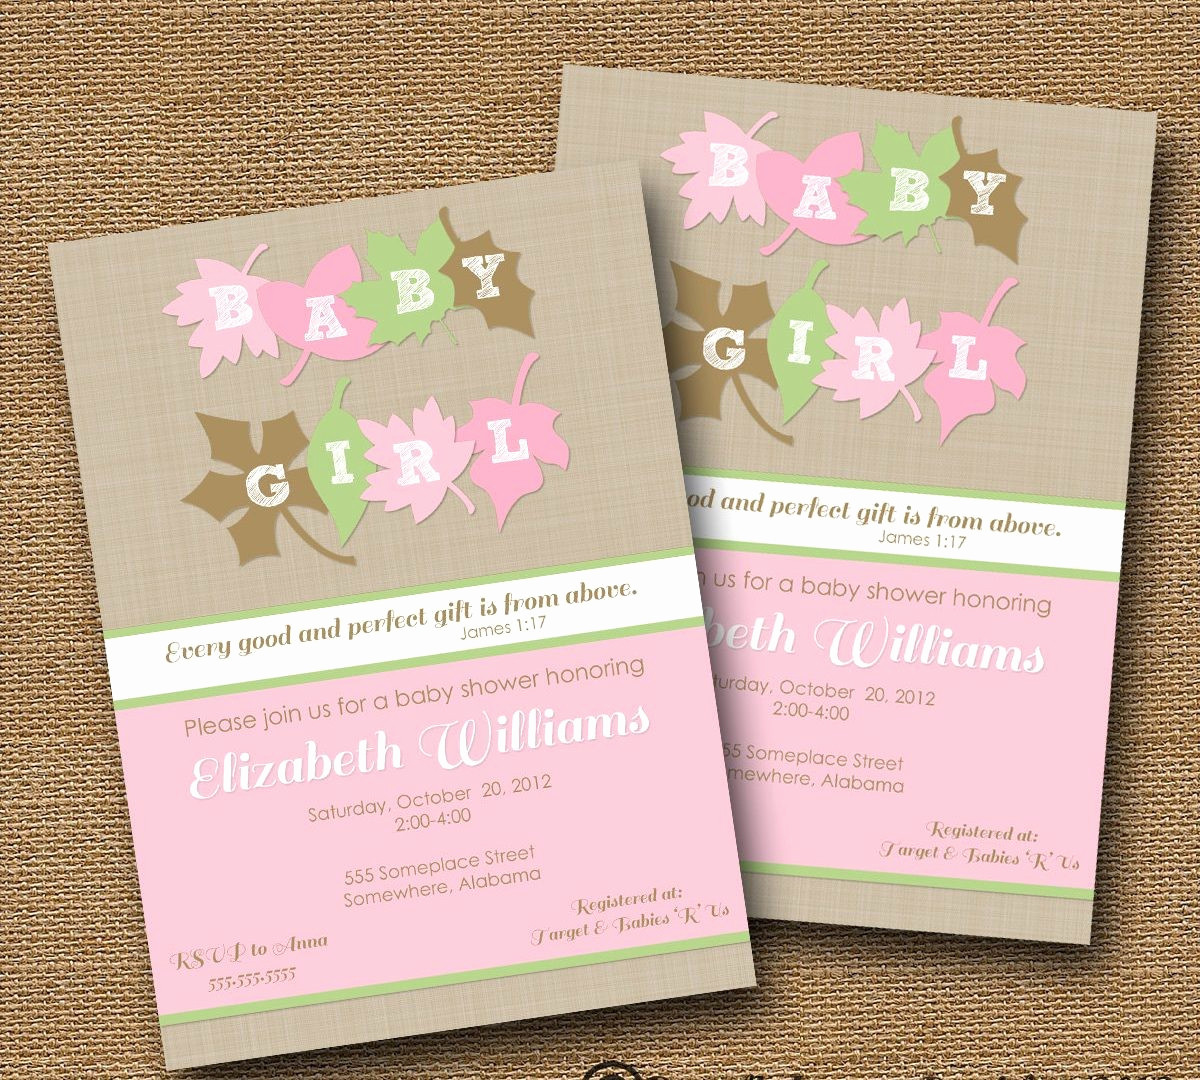 Full Size of Baby Shower:63+ Delightful Cheap Baby Shower Invitations Image Inspirations Cheap Baby Shower Invitations As Well As Arreglos Para Baby Shower With Baby Shower Props Plus Adornos De Baby Shower Together With Baby Shower Para Niño